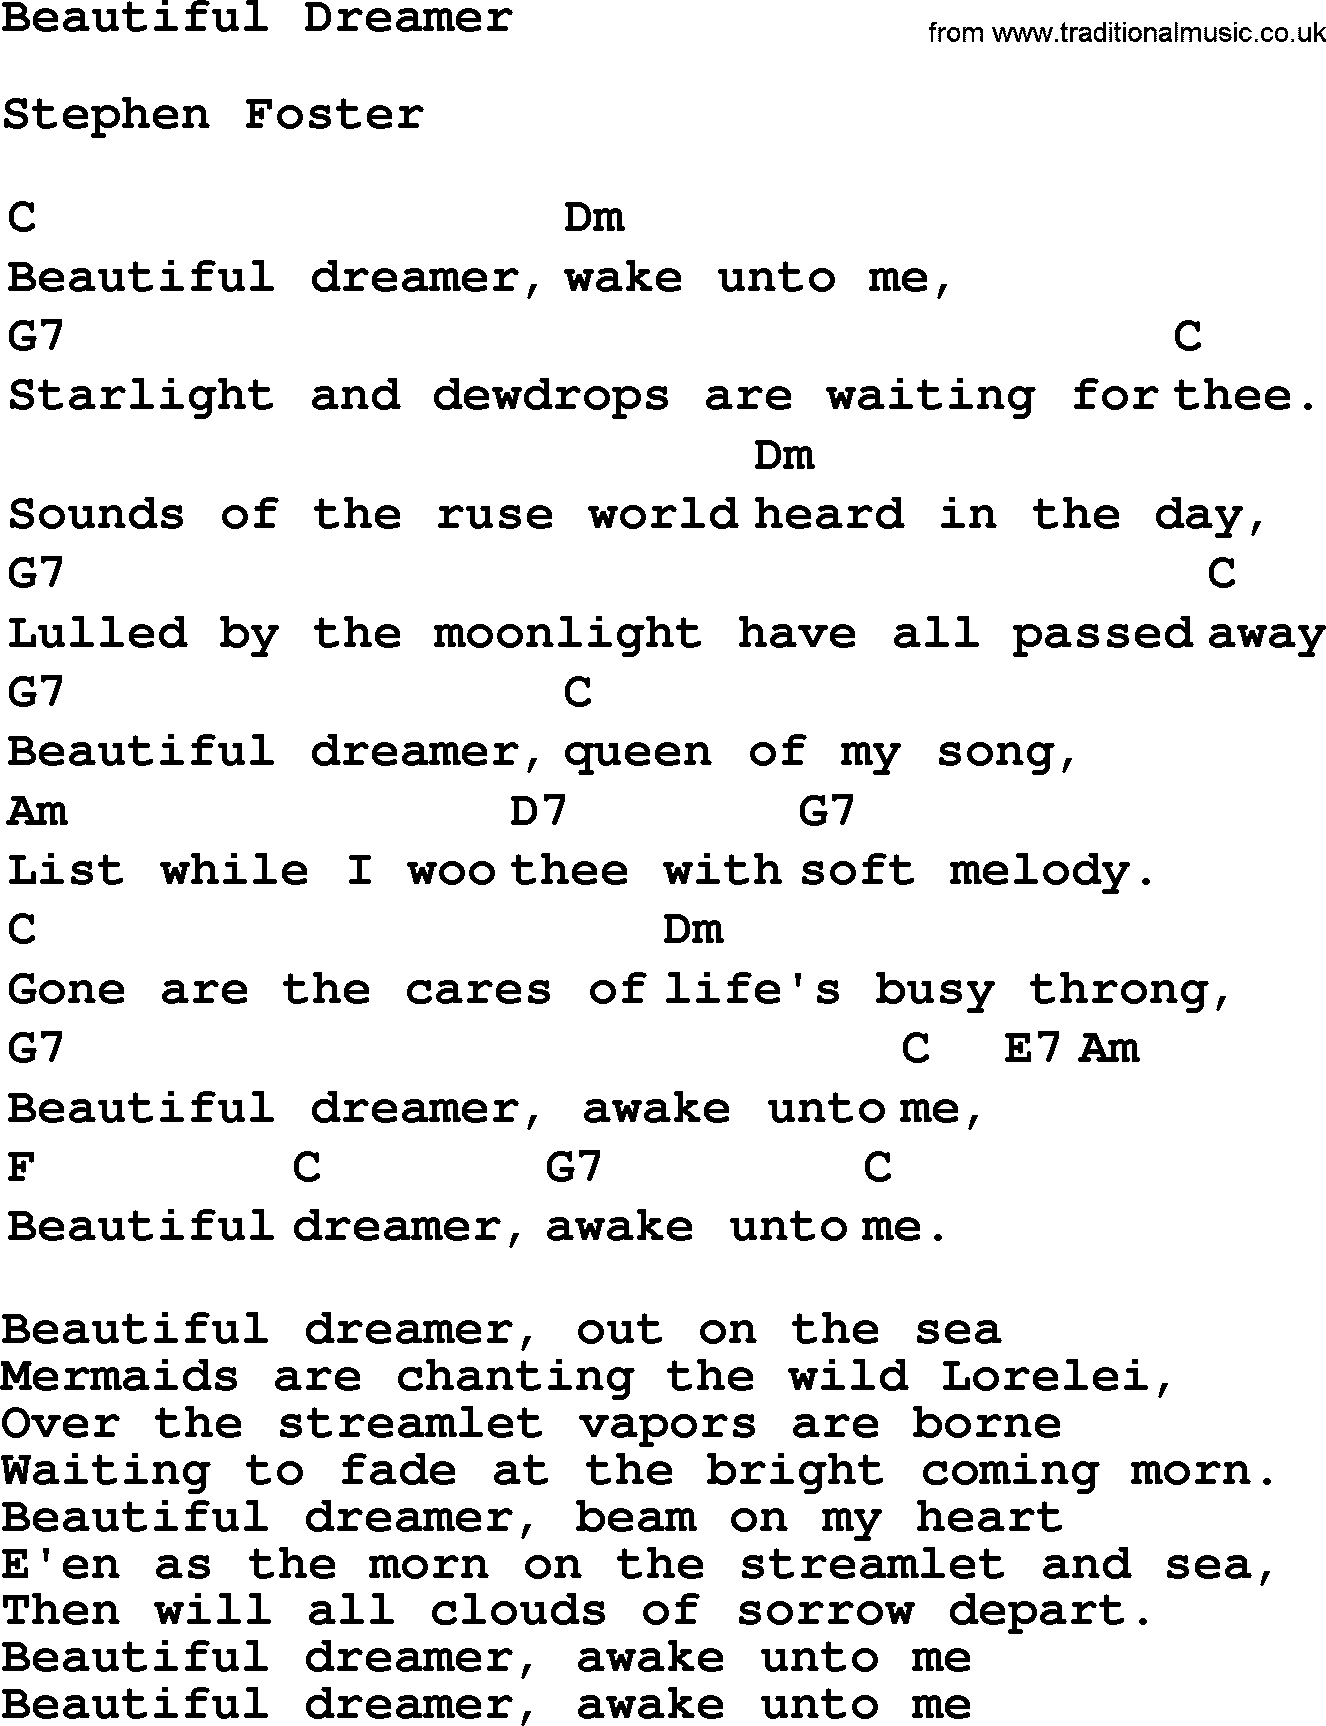 Top 1000 folk and old time songs collection beautiful dreamer top 1000 most popular folk and old time songs beautiful dreamer lyrics and hexwebz Gallery